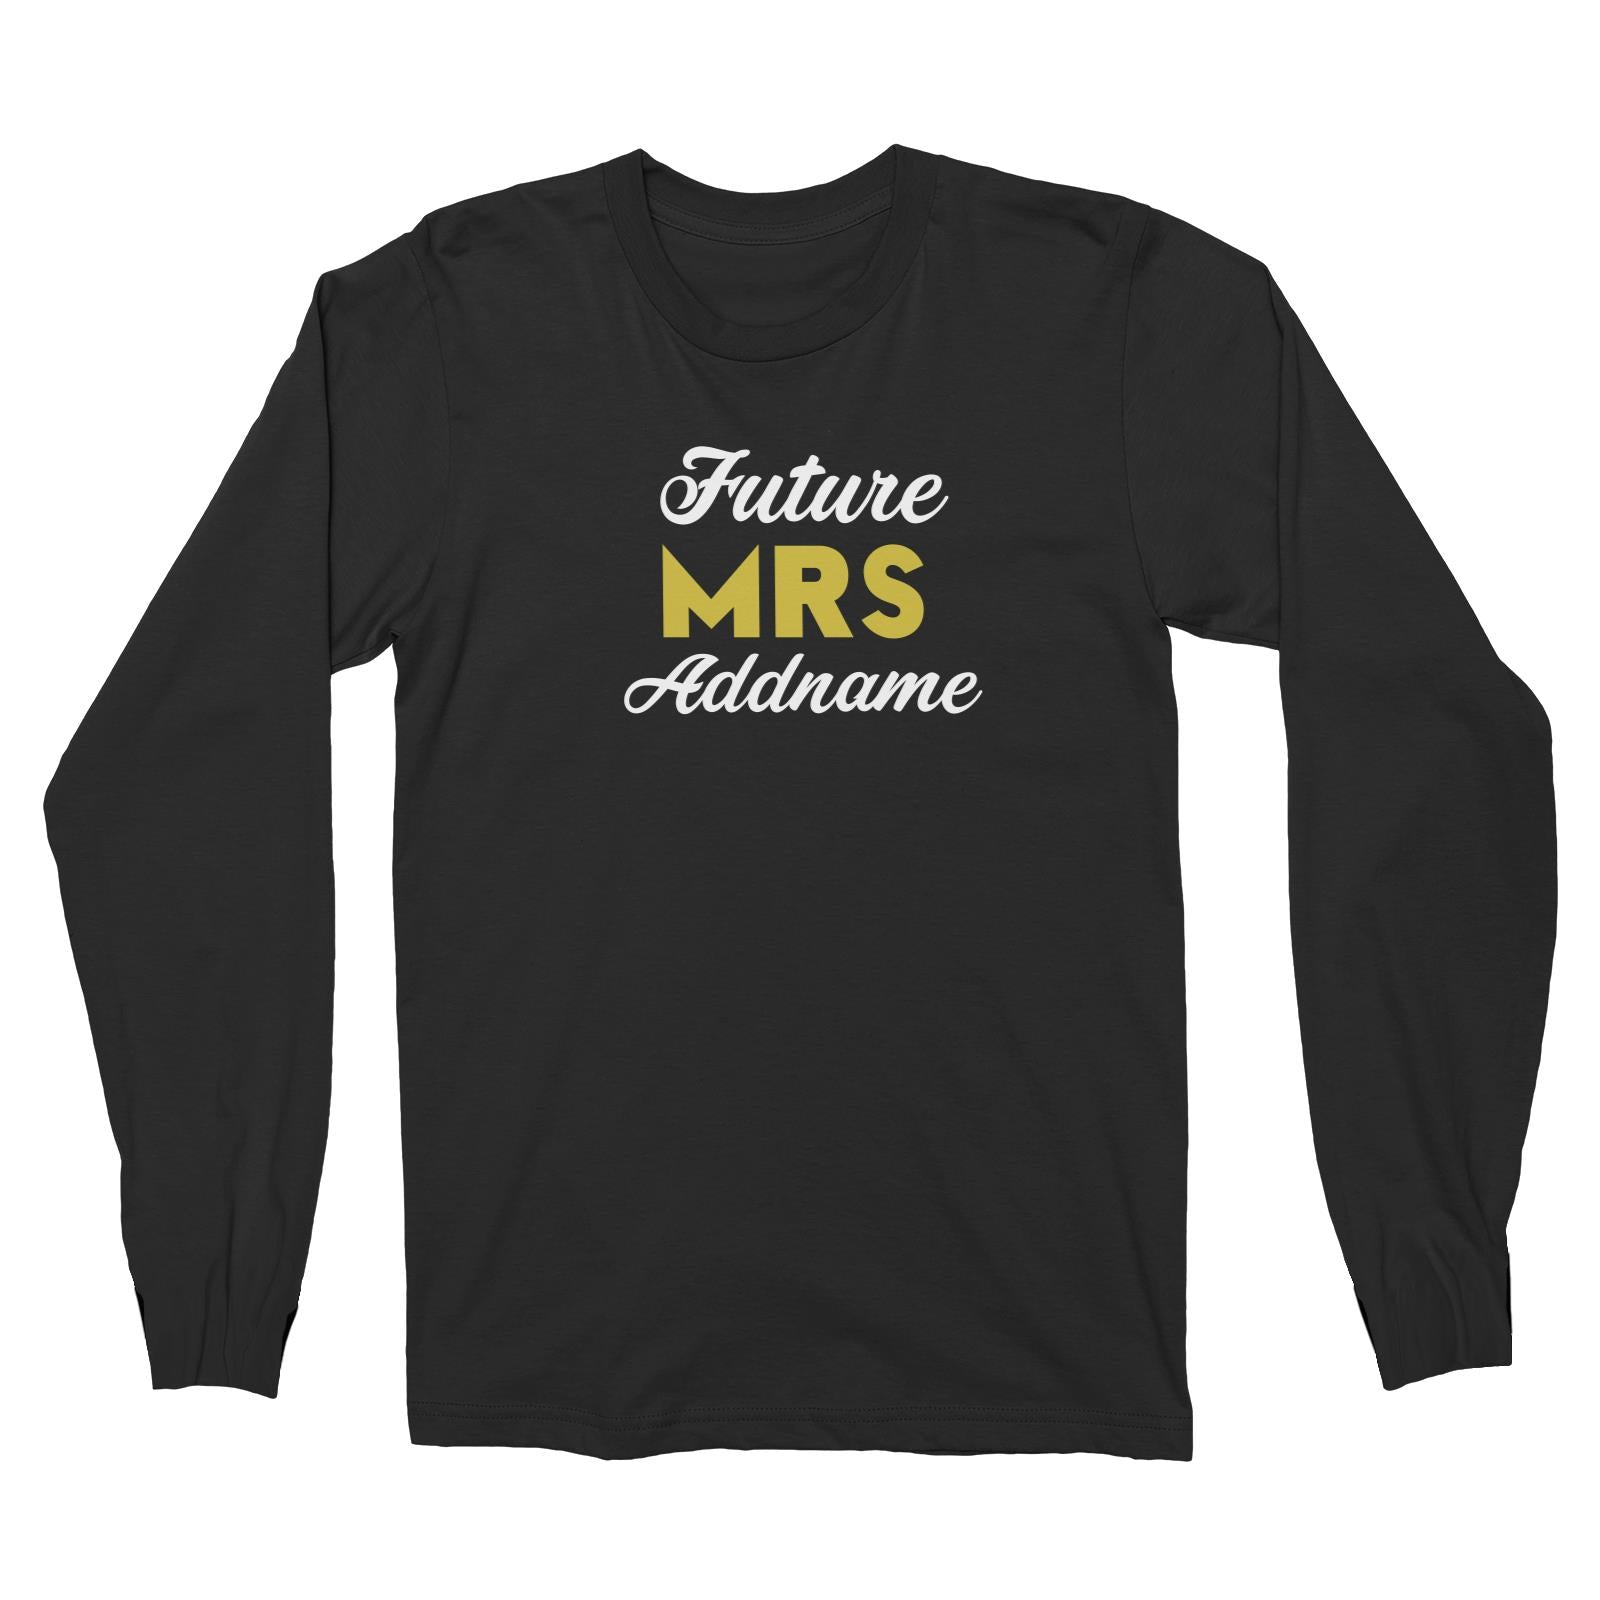 Bridesmaid Team Future Mrs Addname Long Sleeve Unisex T-Shirt